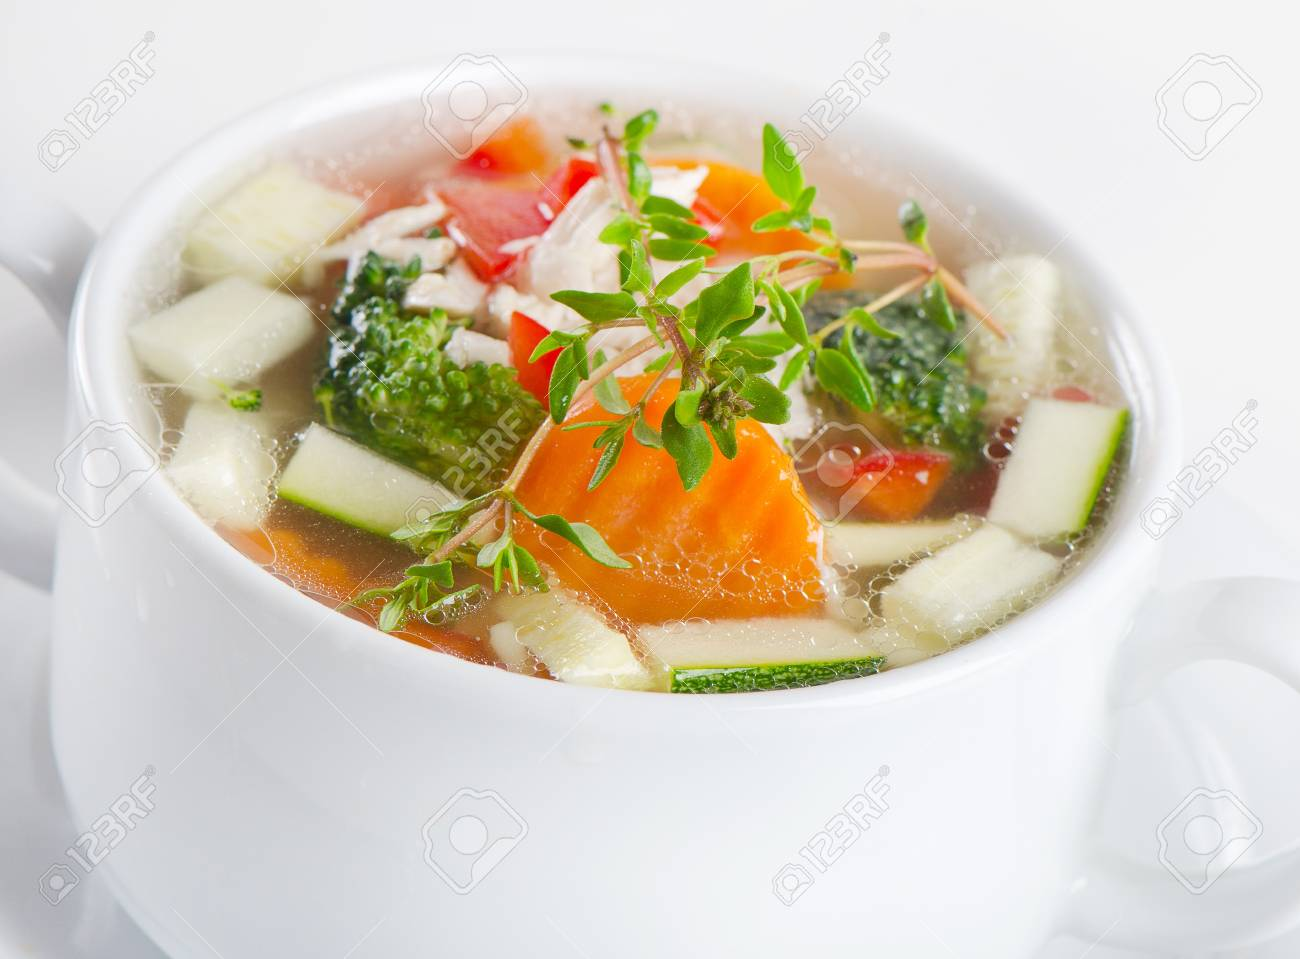 Bowl of Chicken vegetable Soup Stock Photo - 13658728